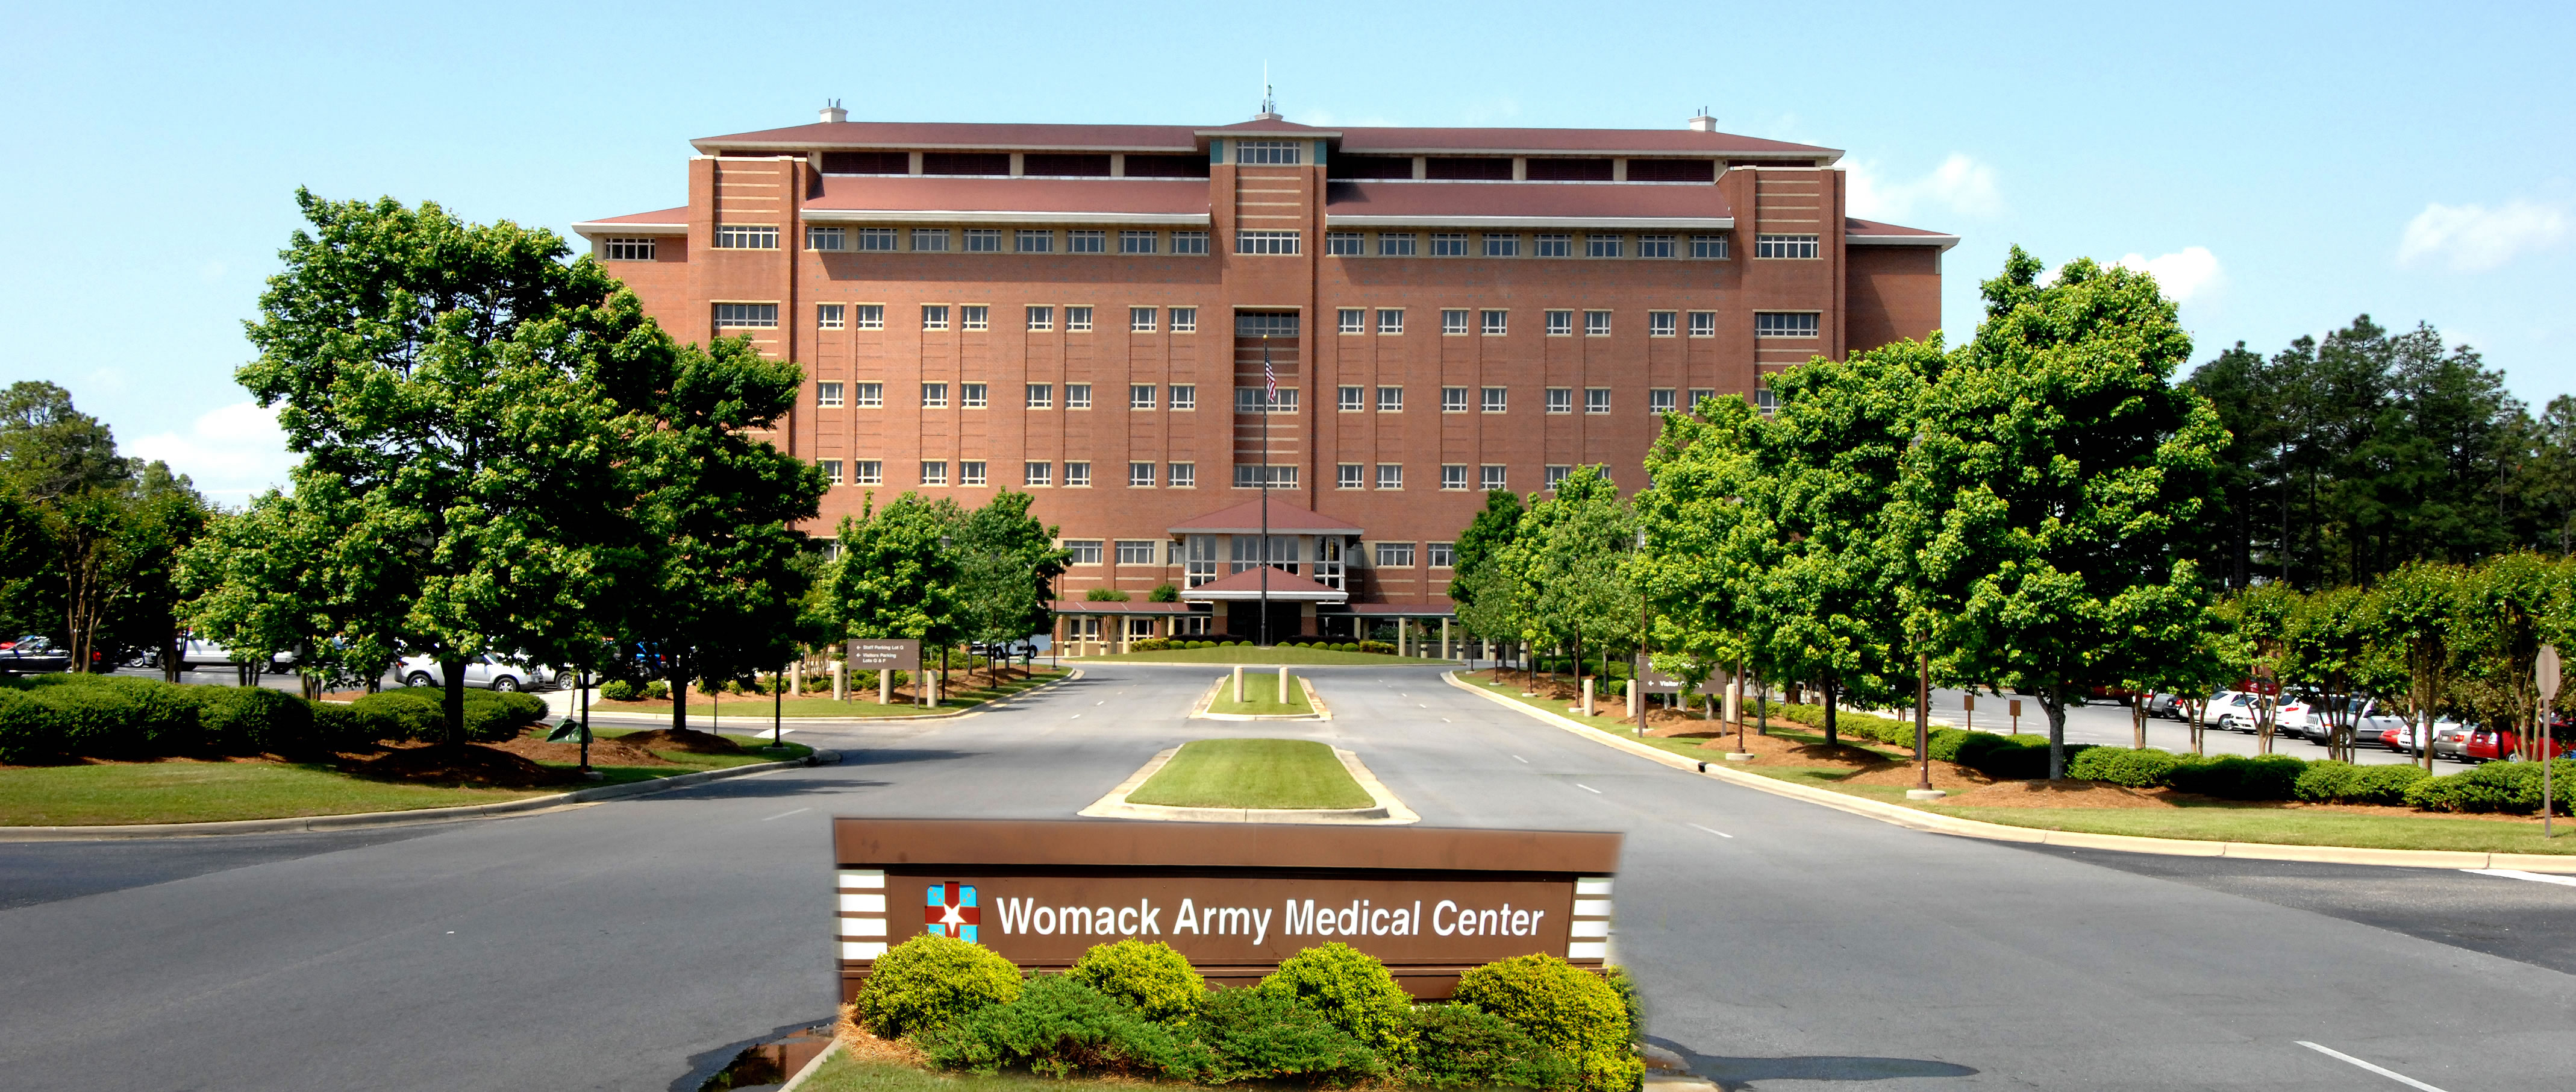 Womack Army Medical Center West Entrance